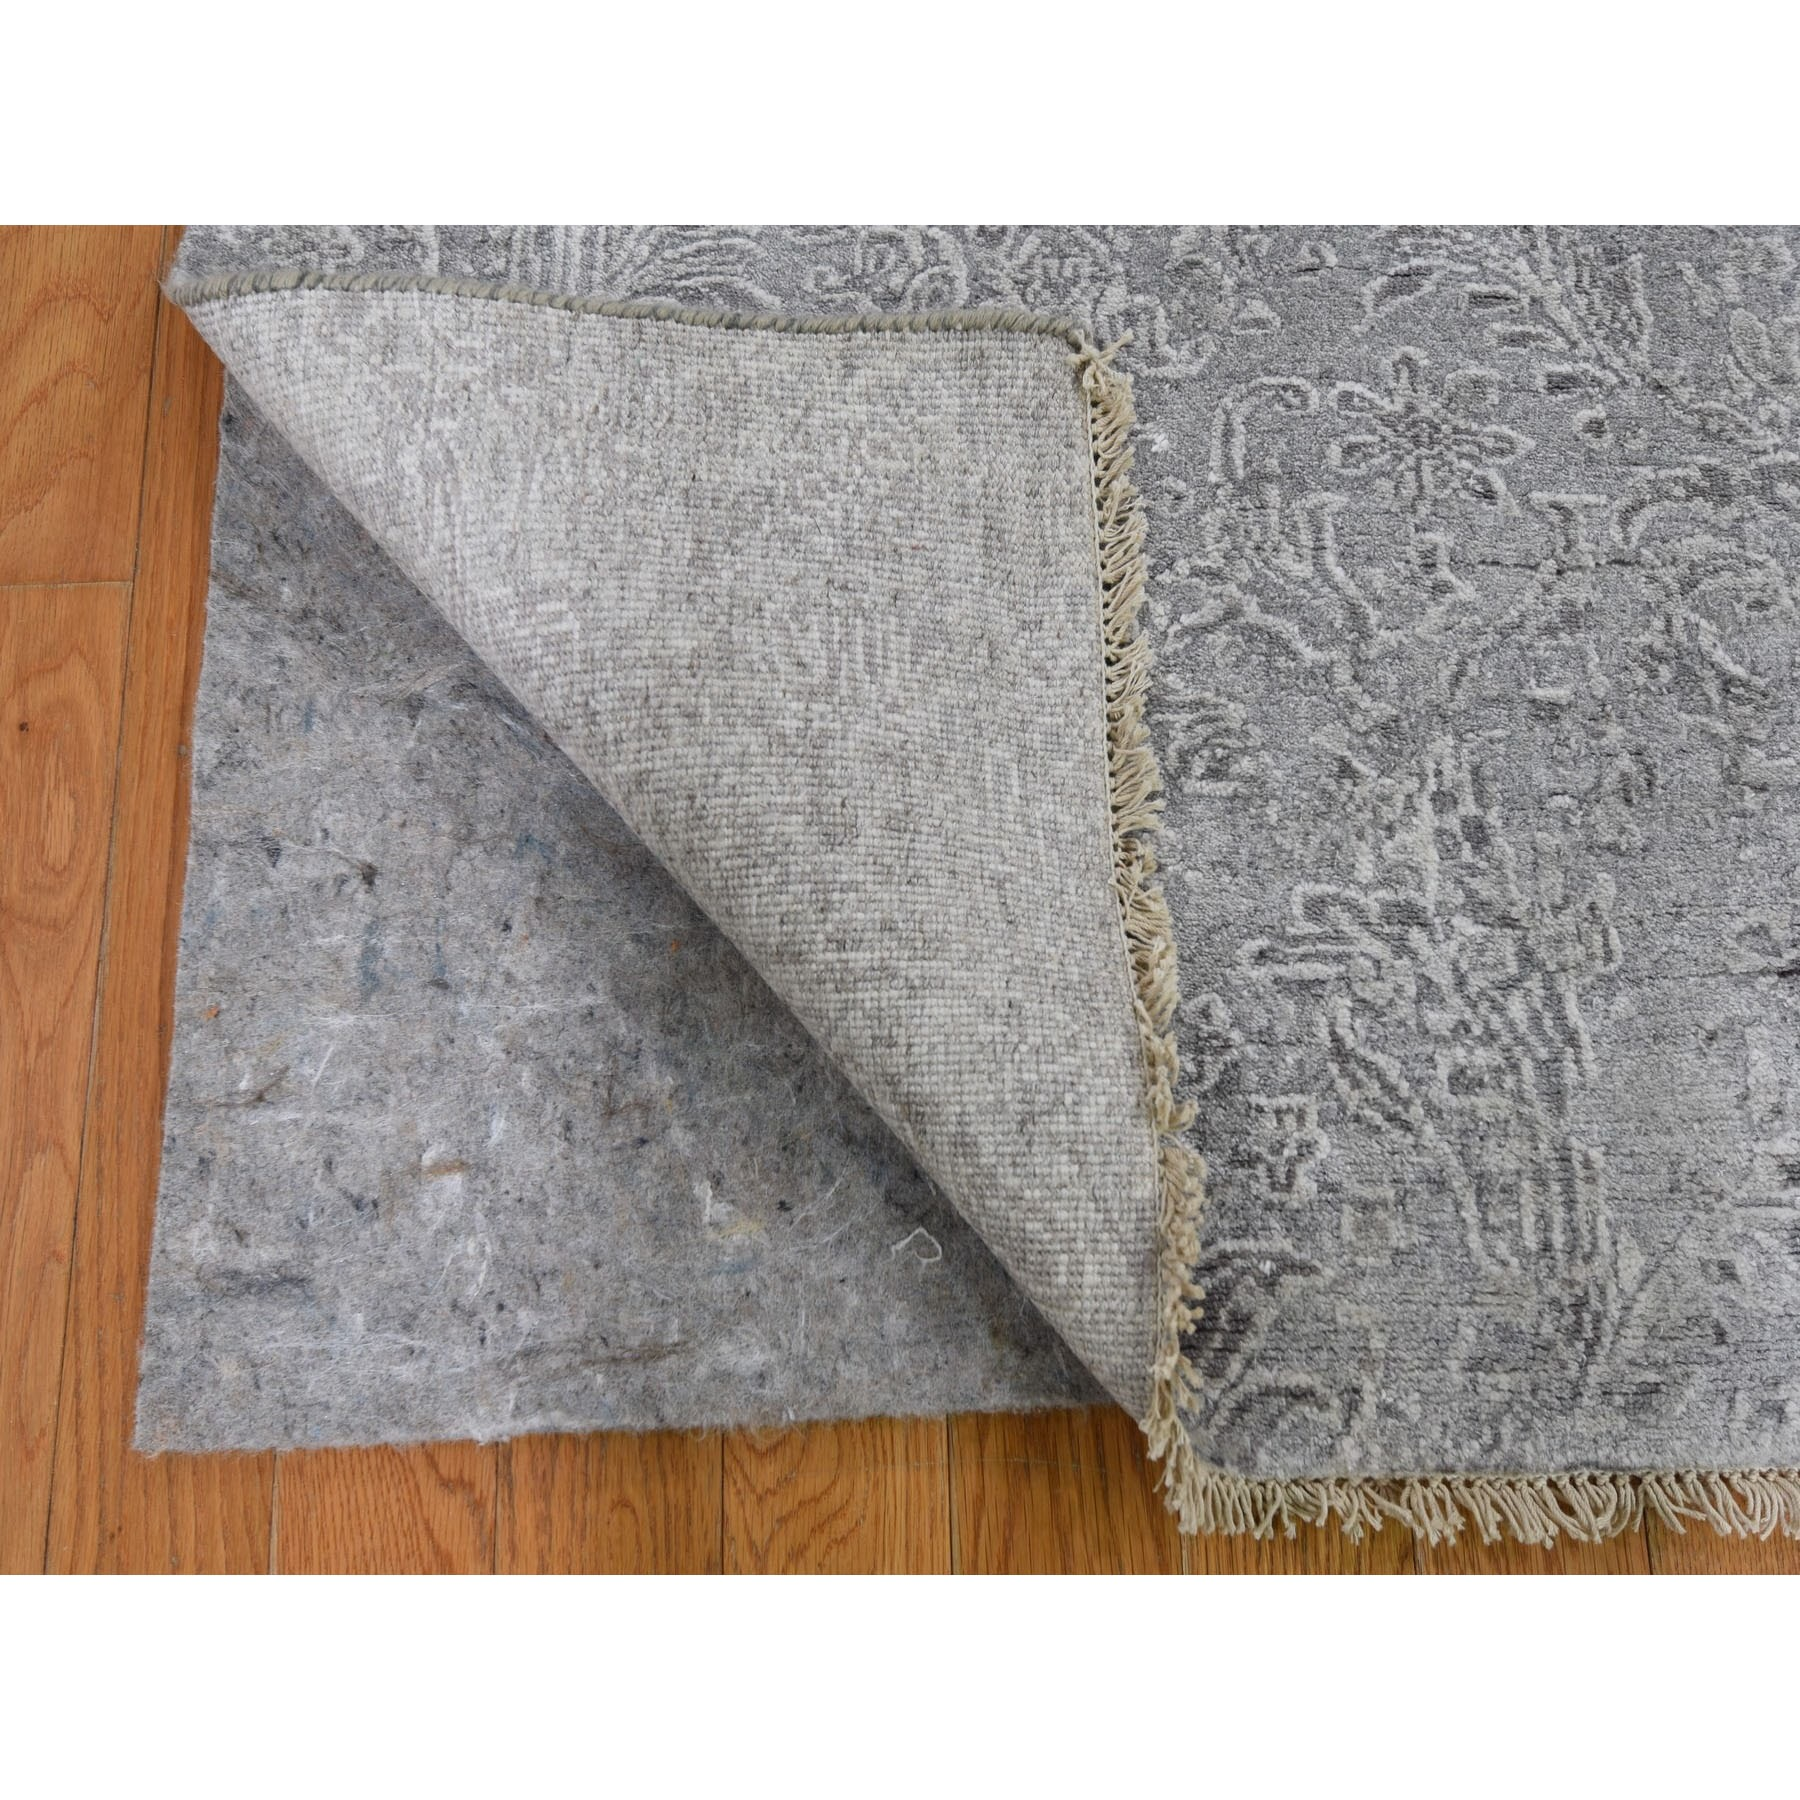 """2'7""""x7'8"""" Hand Knotted Damask Tone On Tone Wool and Silk Hi-Lo Pile Runner Oriental Rug"""